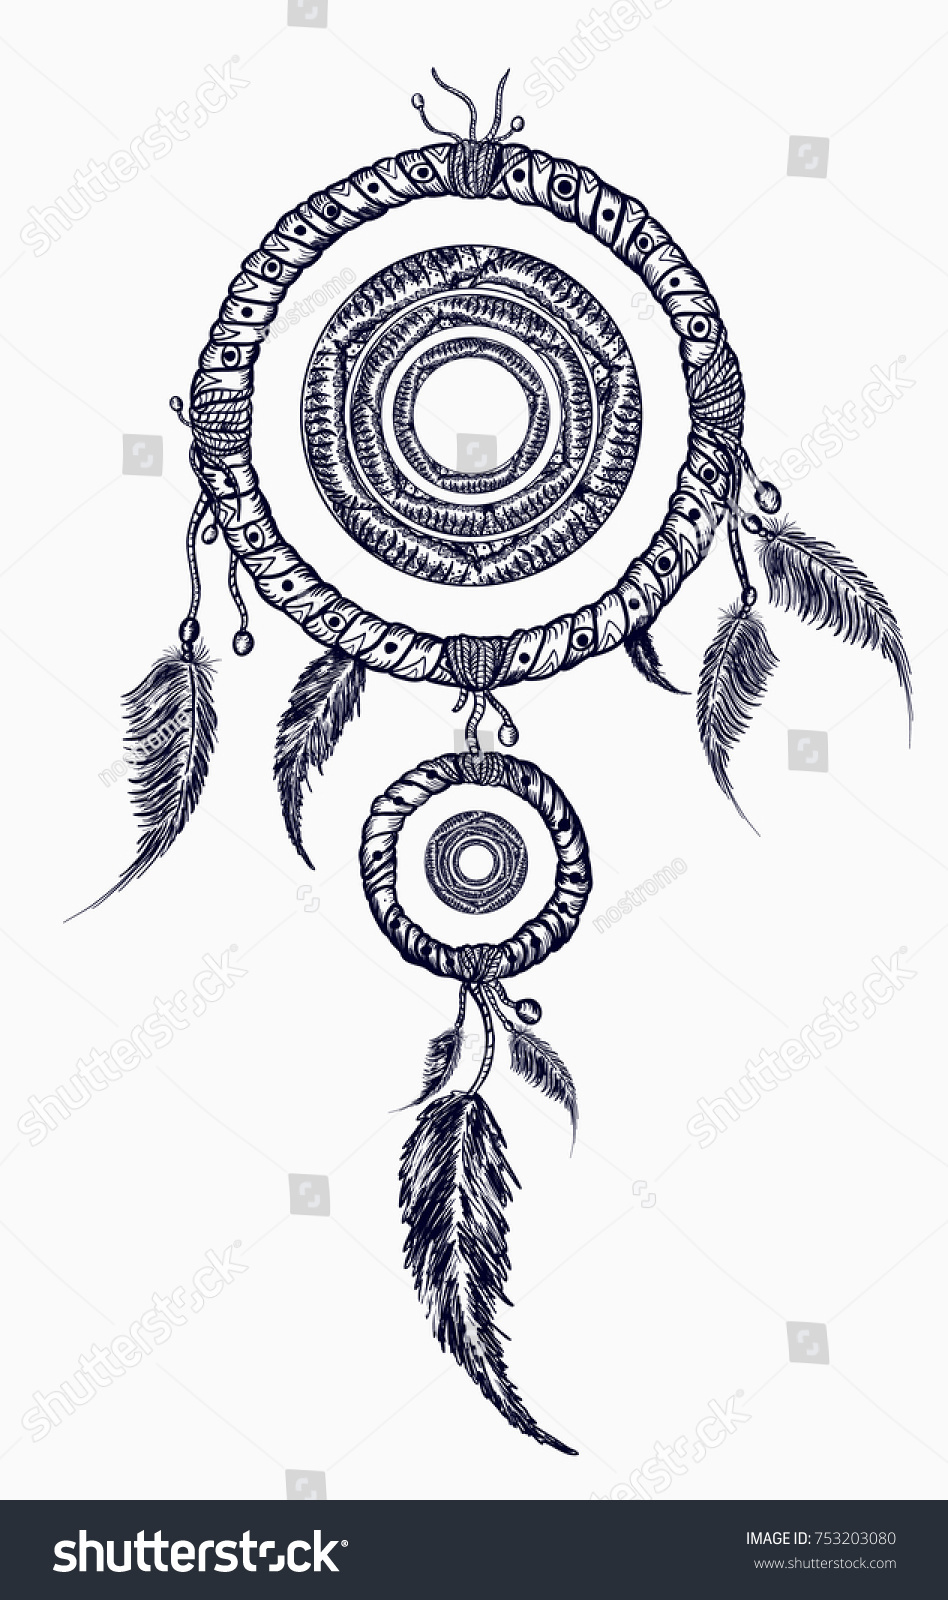 3ff7a0205 Dream catcher with feathers tattoo. Boho native american style t-shirt  design. Indian.